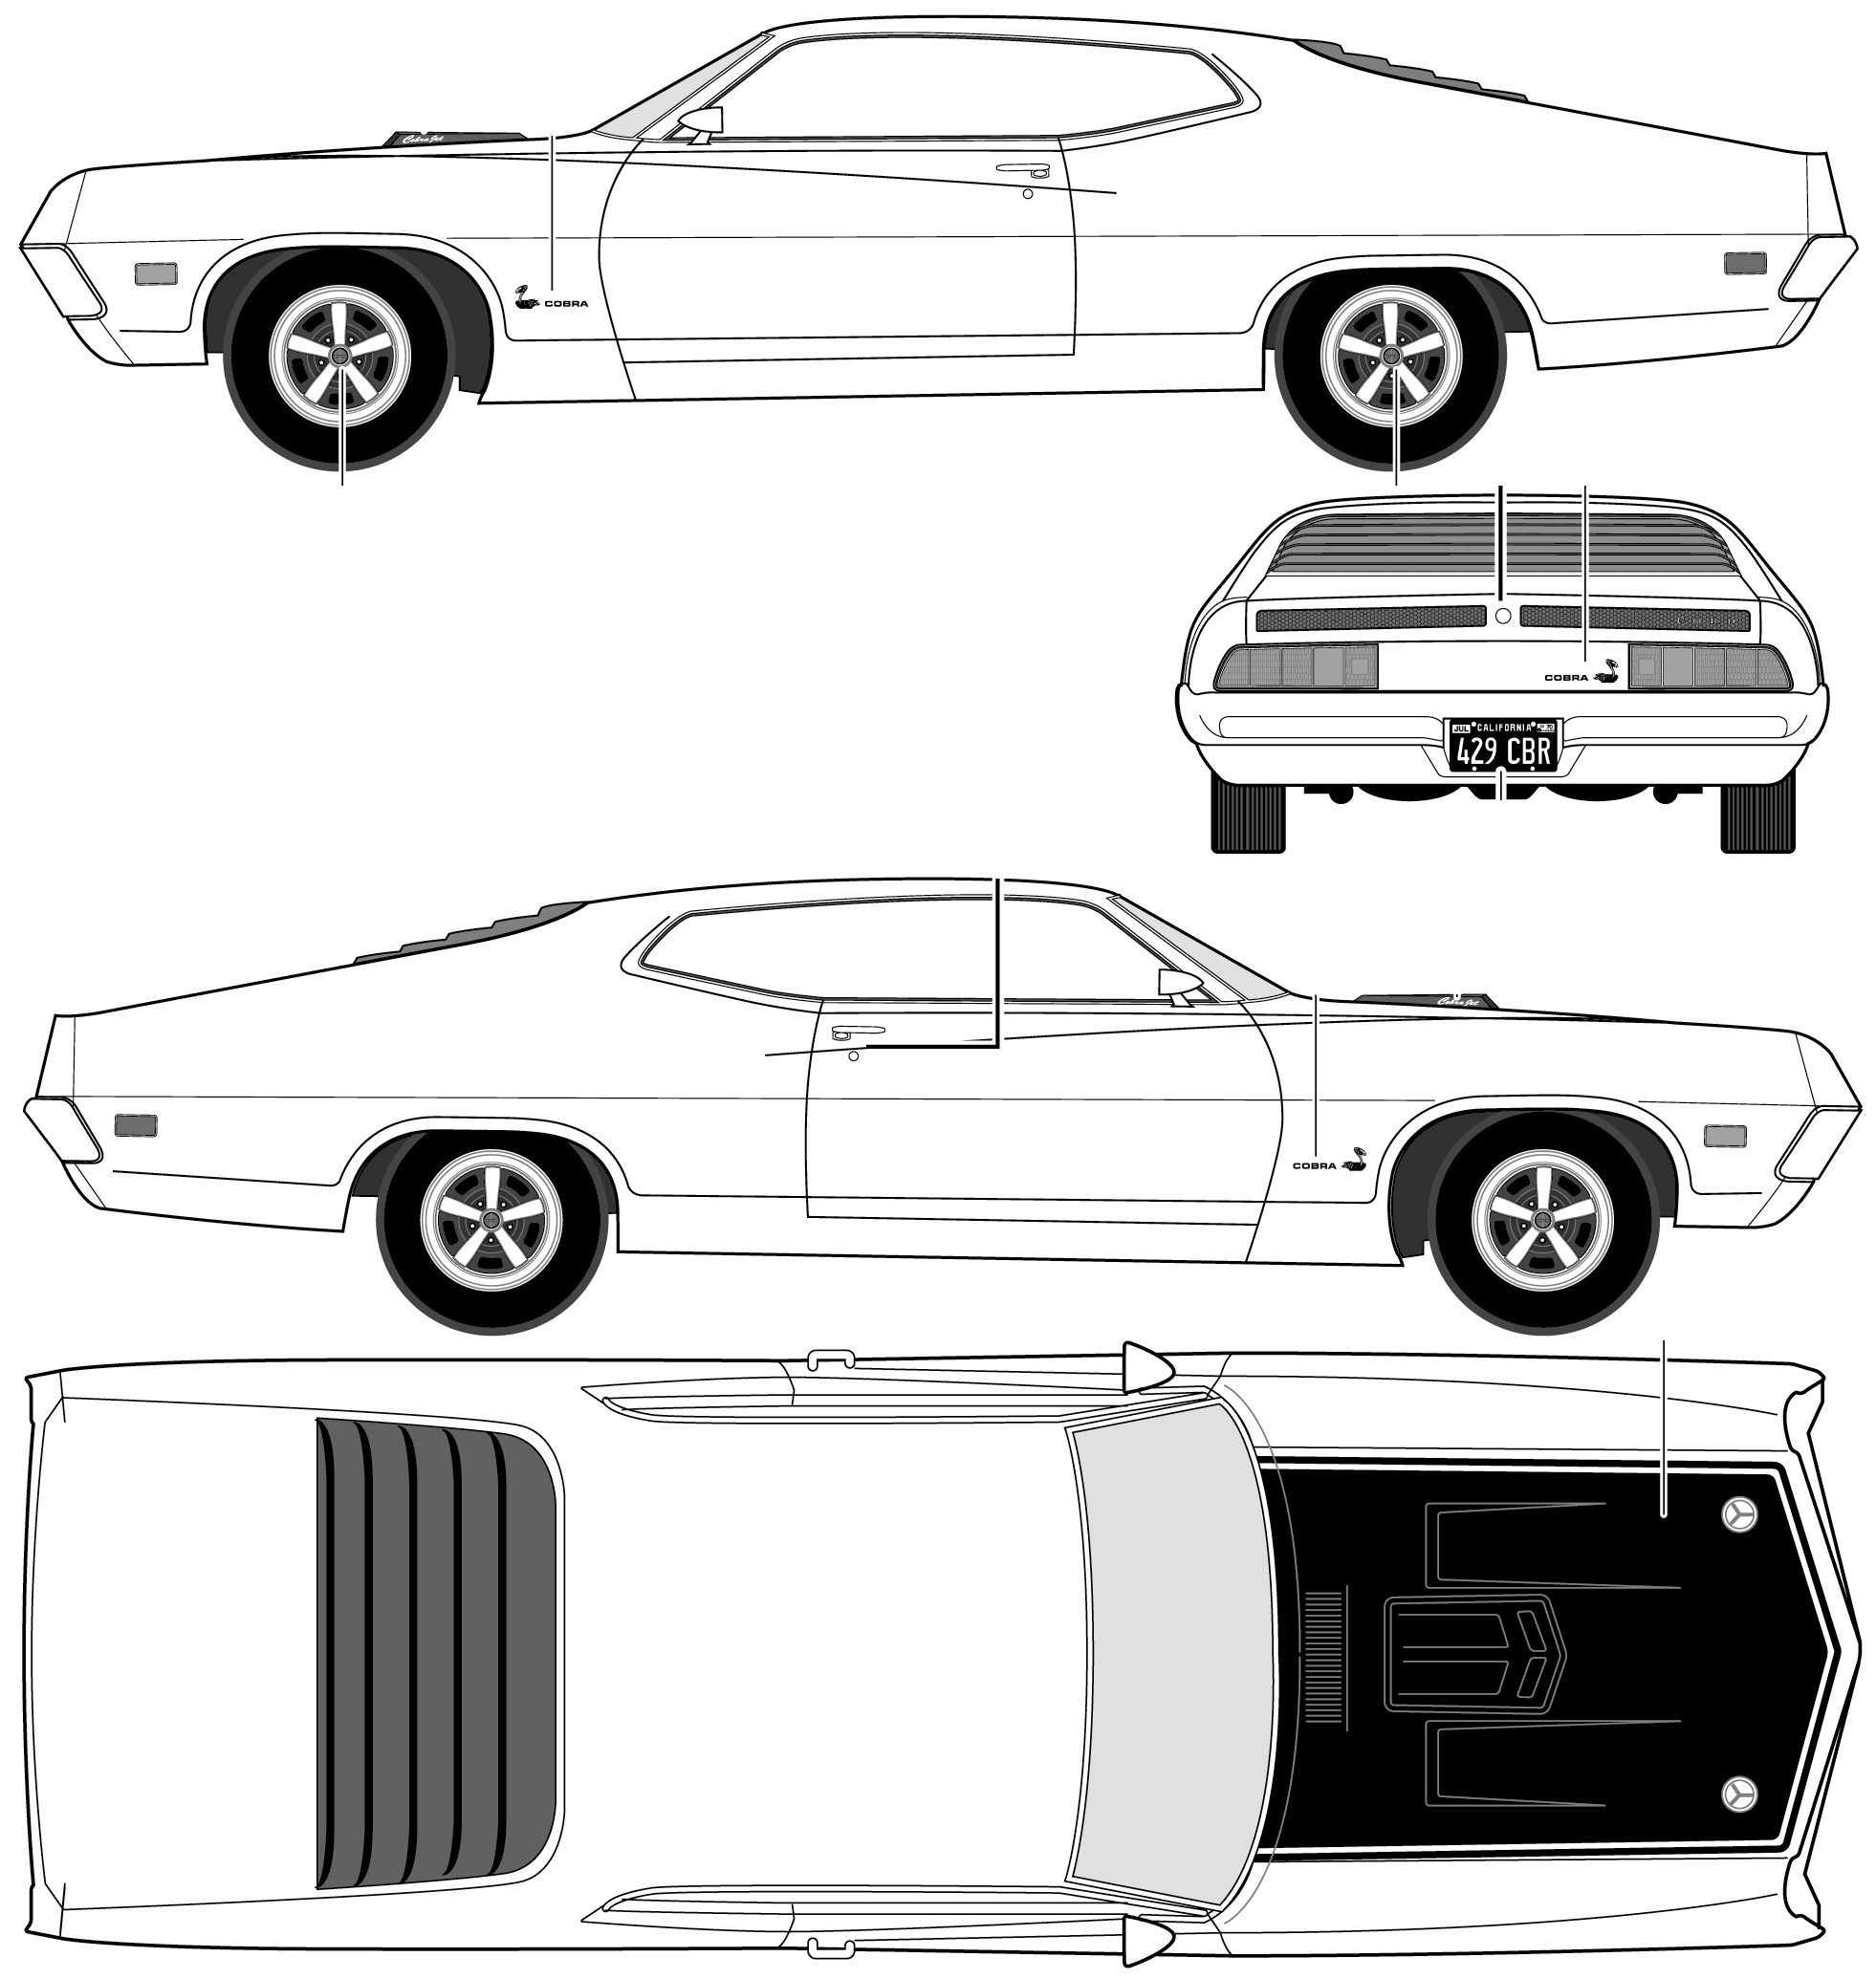 Ford torino cobra blueprint mechanical blue prints pinterest ford torino cobra blueprint malvernweather Image collections